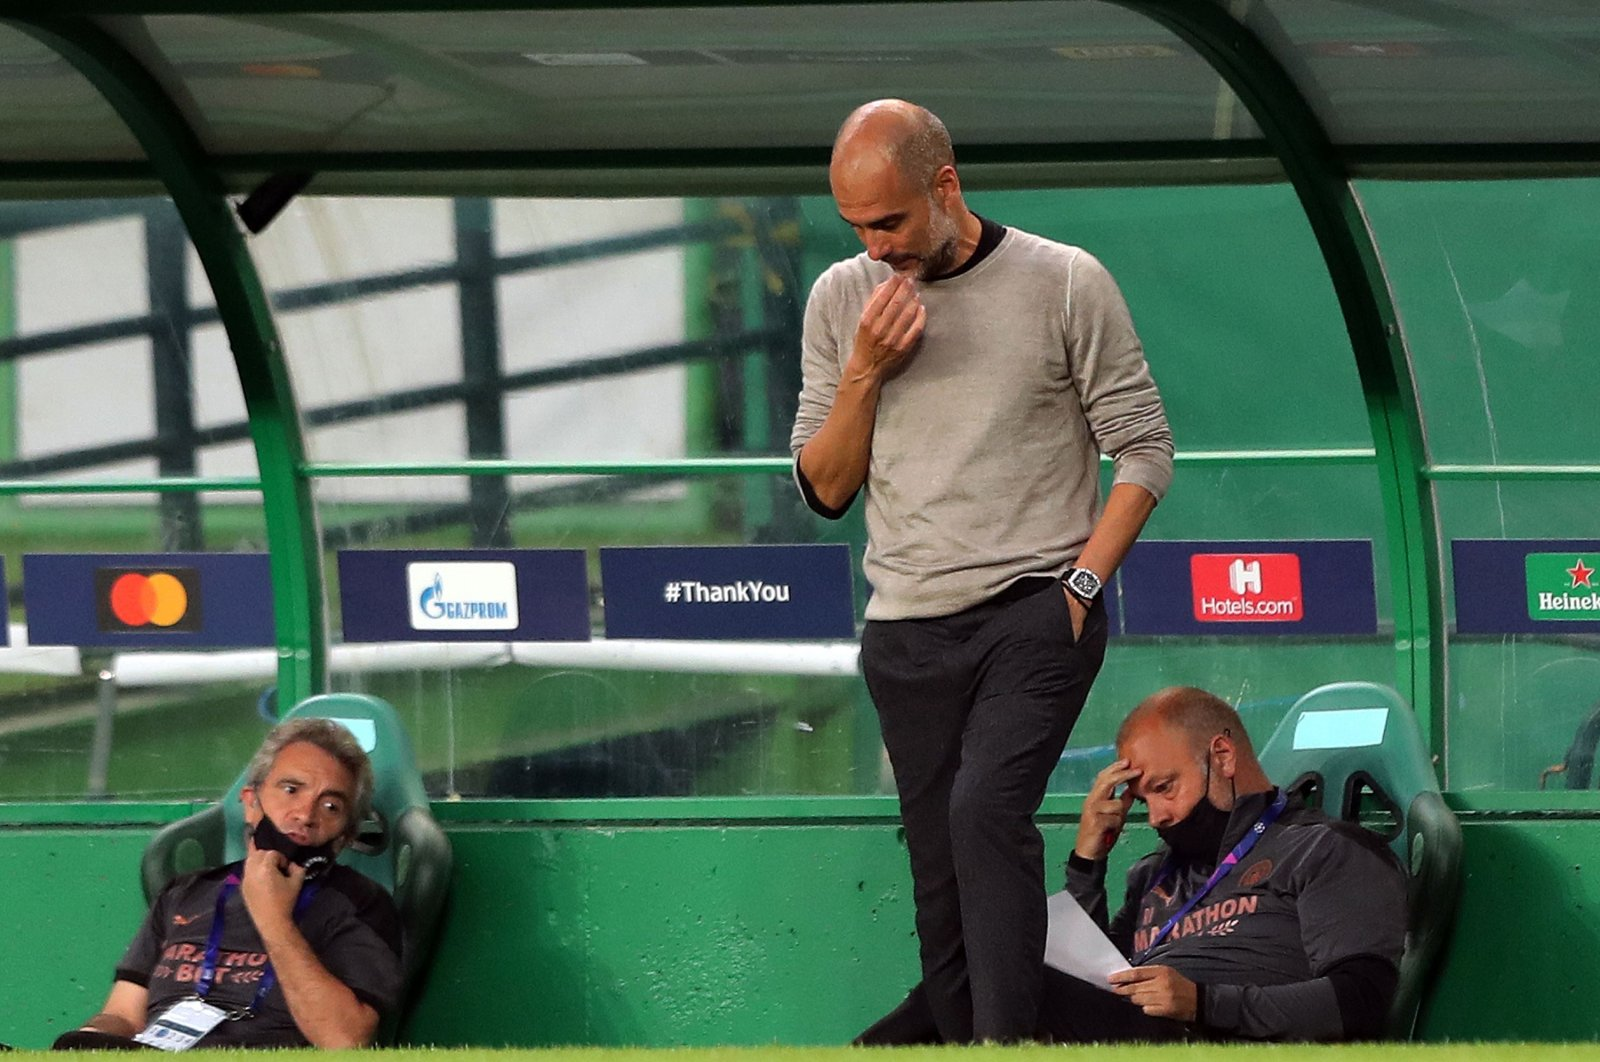 Pep Guardiola gestures on the sidelines during Manchester City's match against Lyon, in Lisbon, Portugal, Aug. 15, 2020. (AFP Photo)